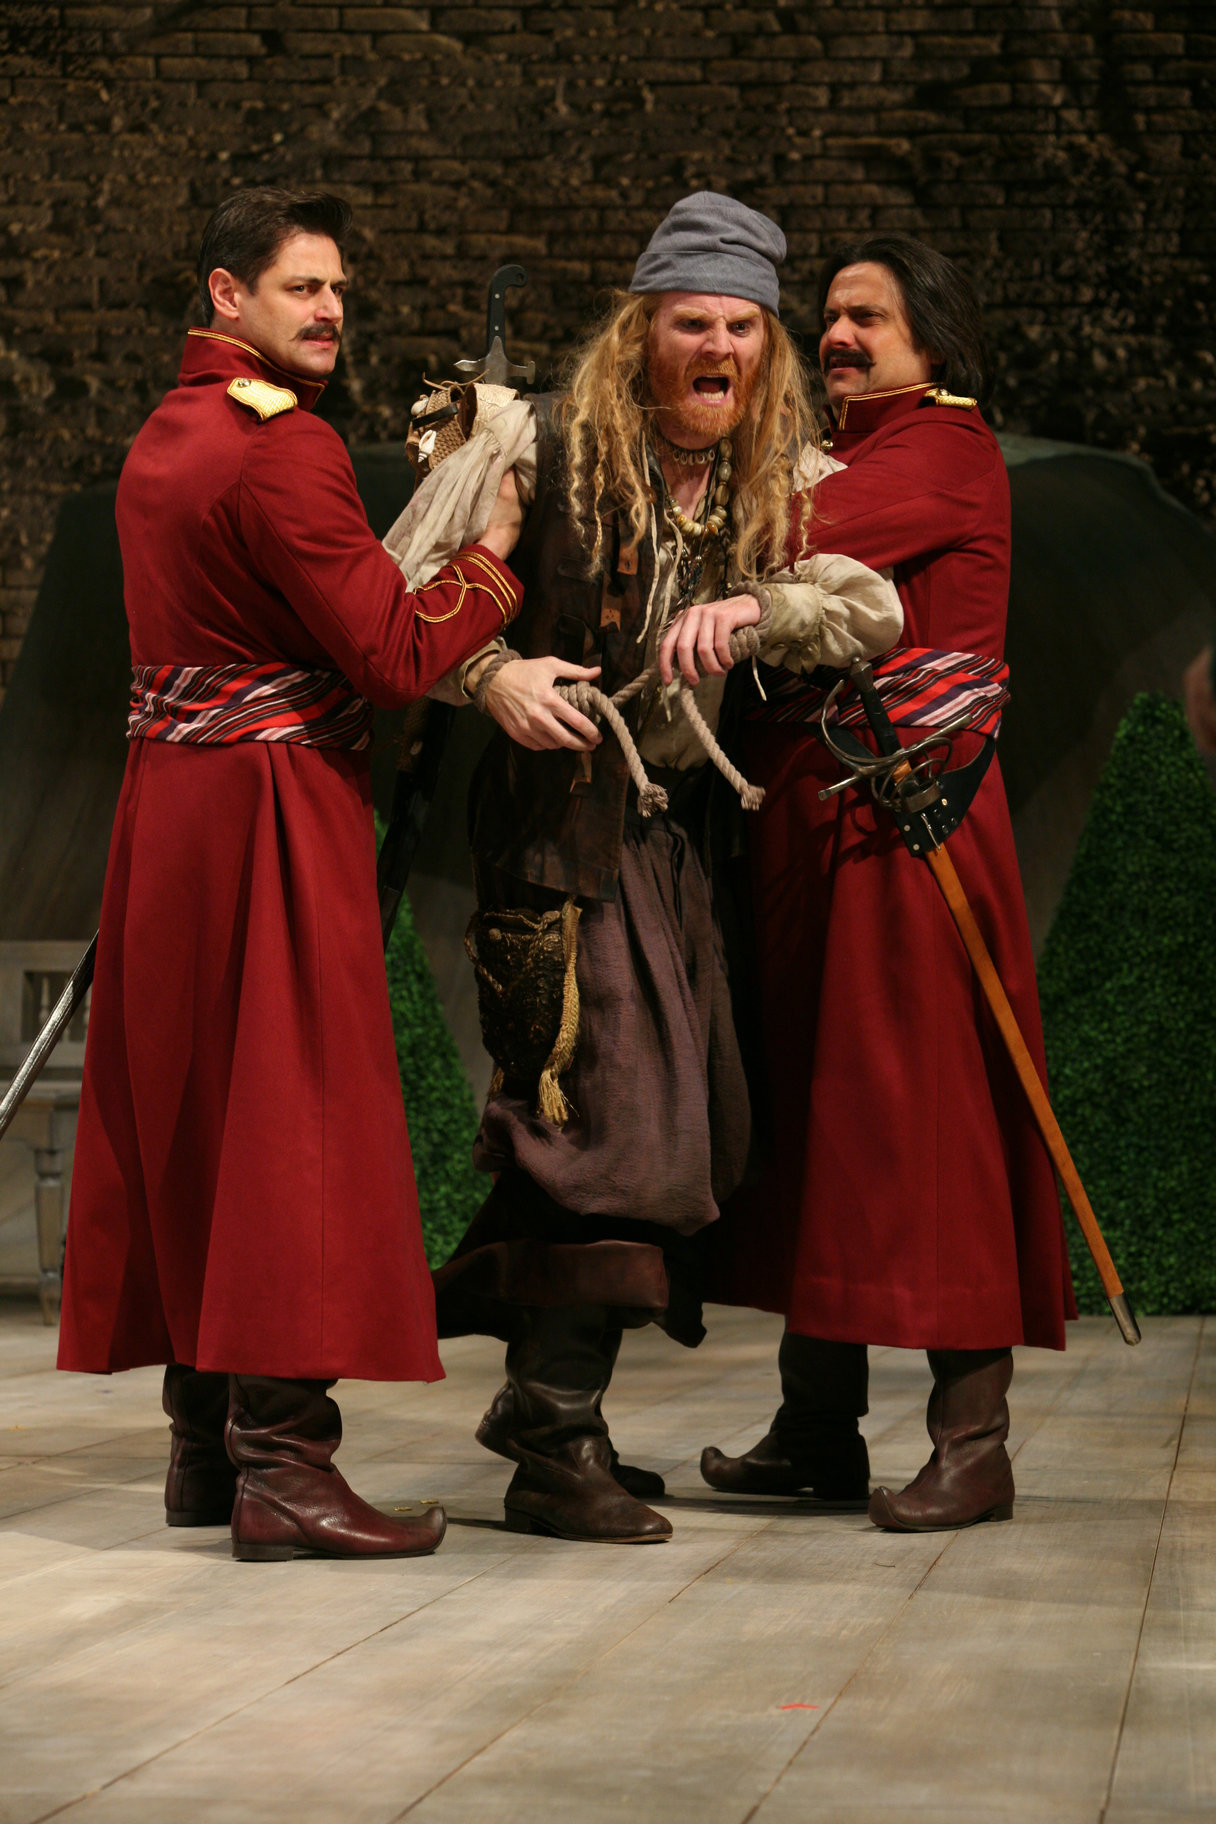 Antonio is arrested by two guards wearing red as he fights to pull away, shouting, in the 2009 production of Twelfth Night.